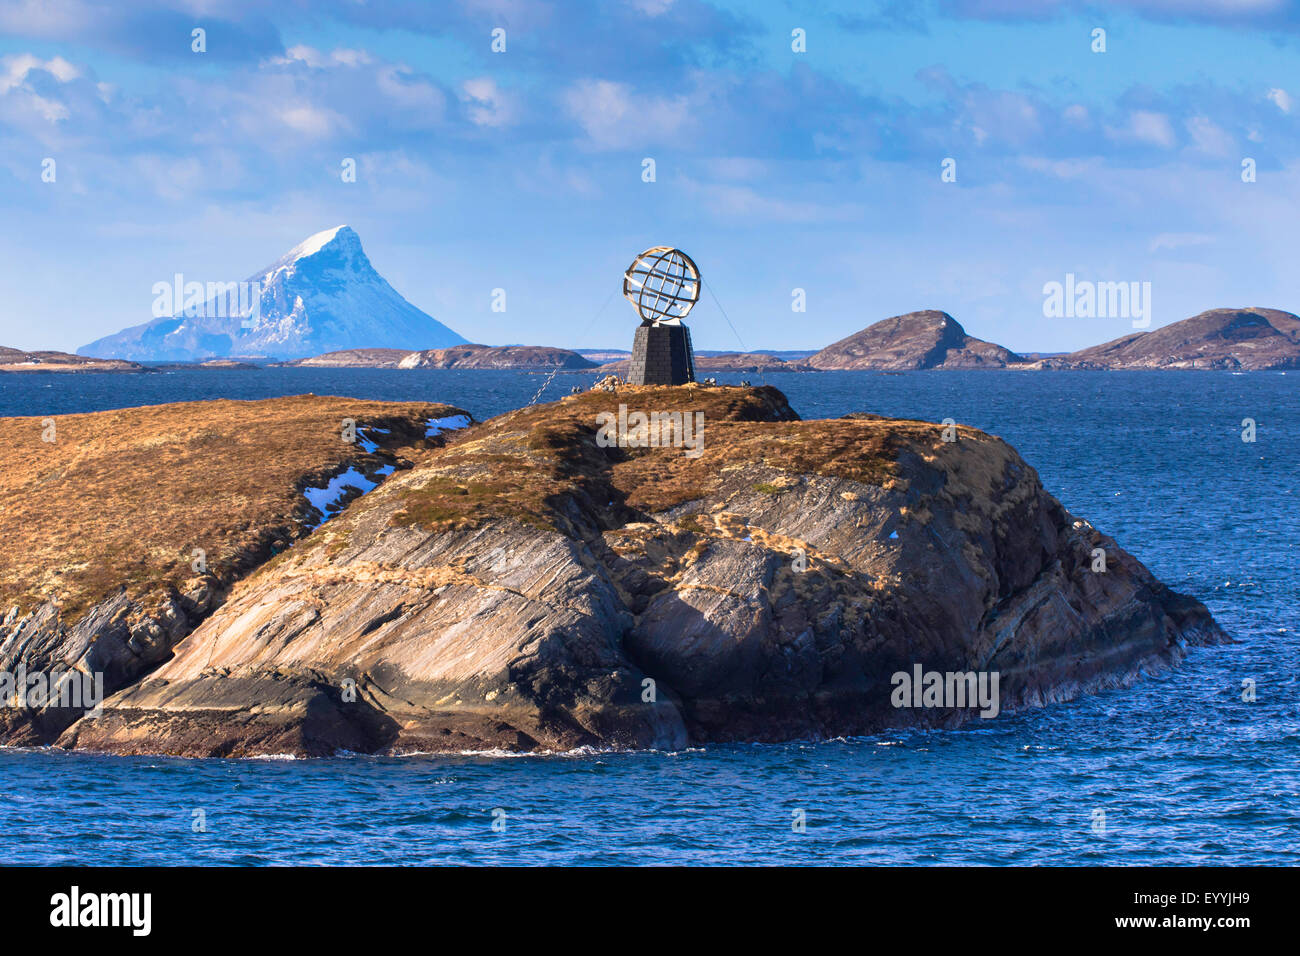 island Vikingen at polar circle, Norway, Nordland, Melfjorden - Stock Image